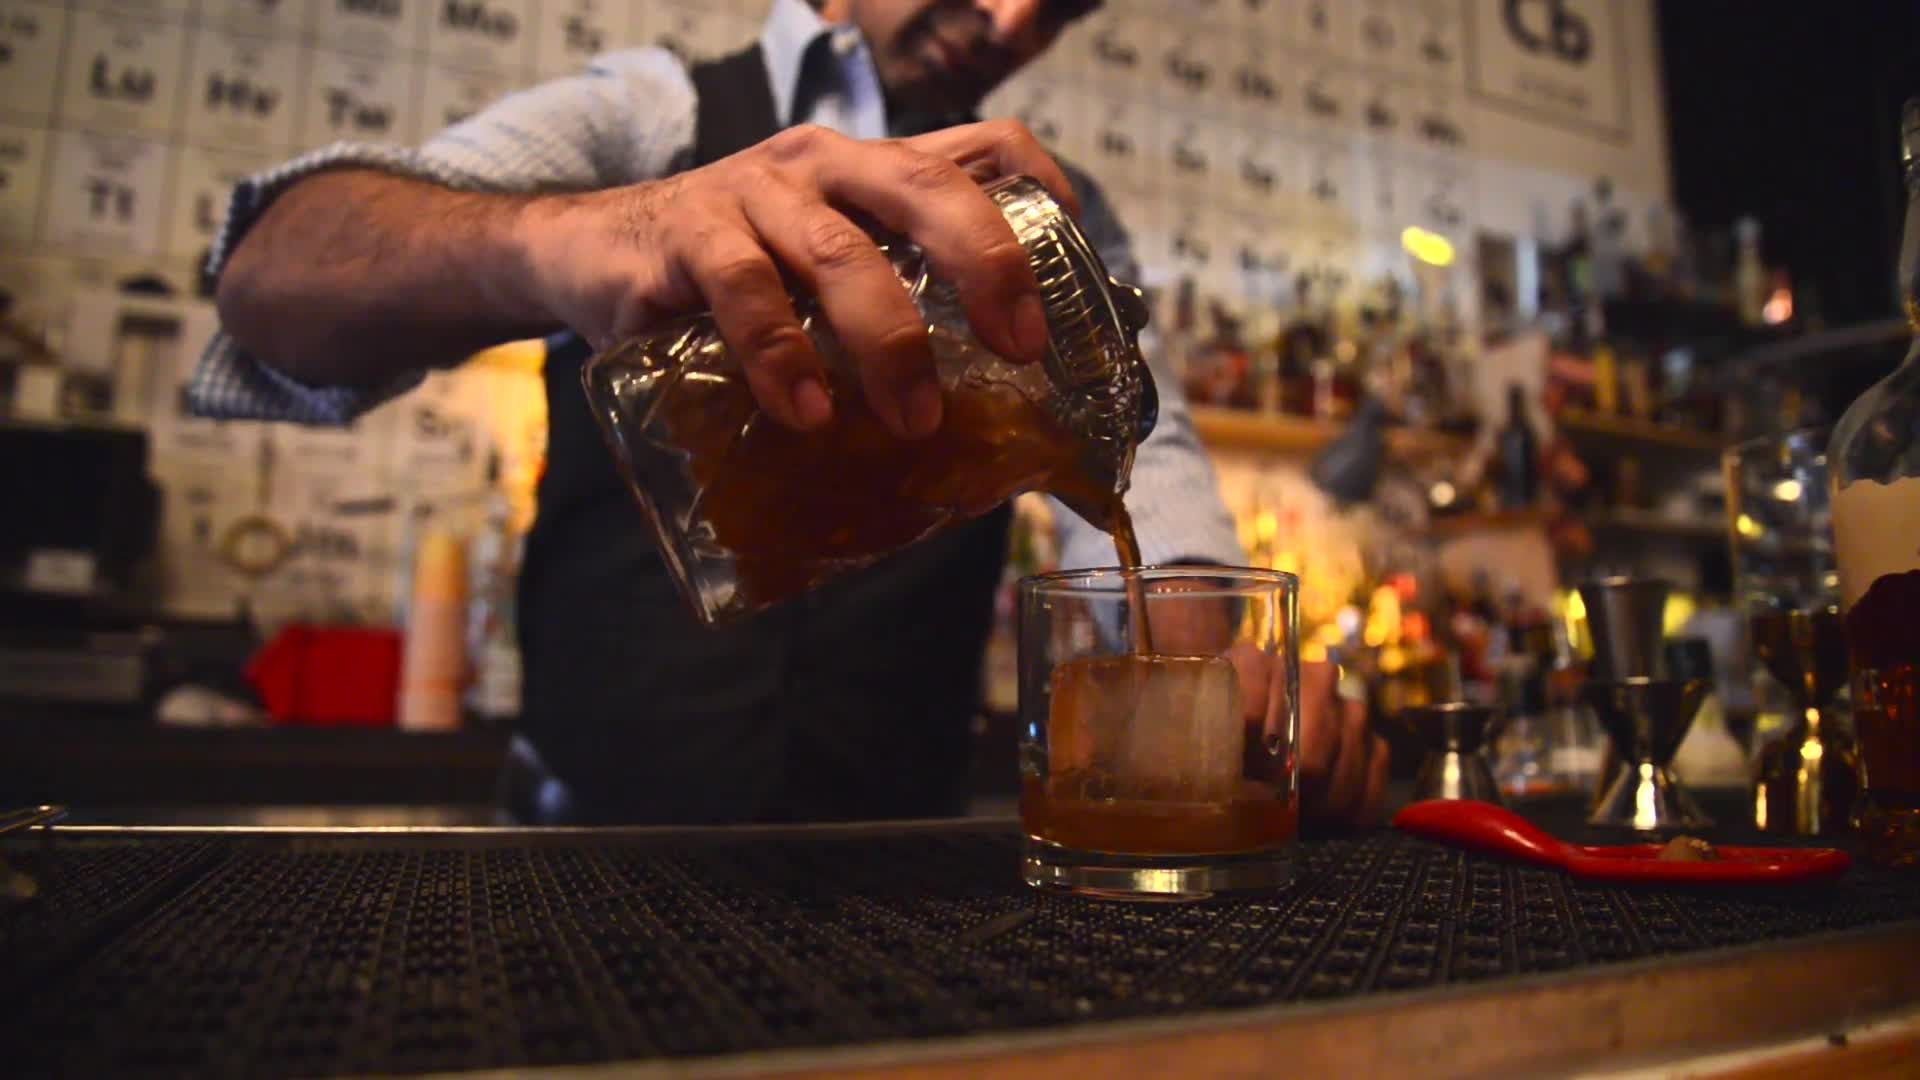 Making a Fireside Old Fashioned at the Collins Bar